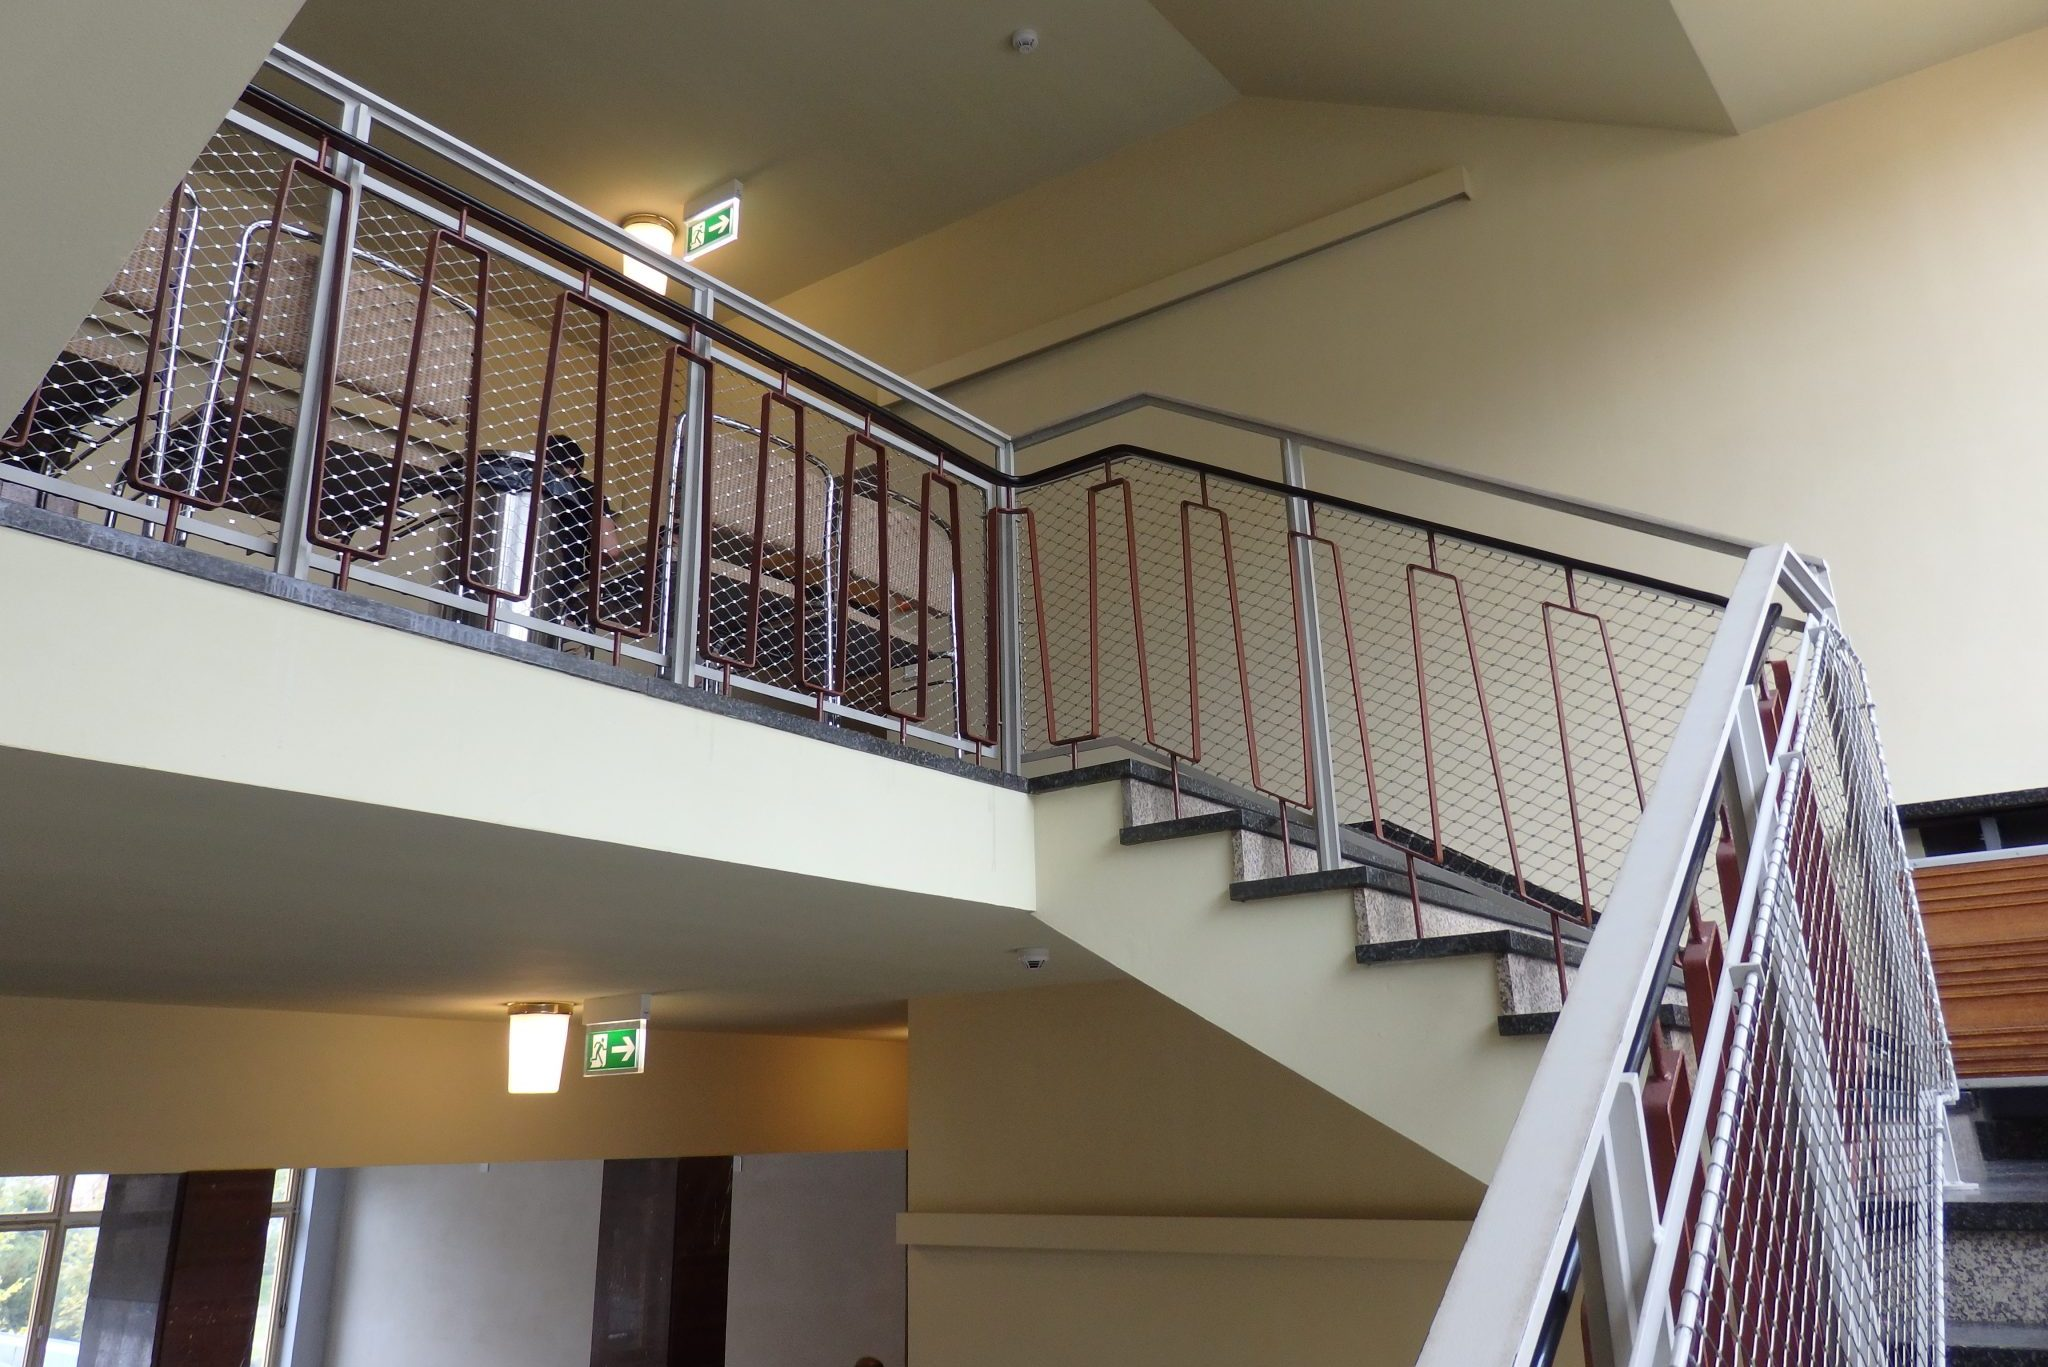 I think my suburban Connecticut school had the same stairway.